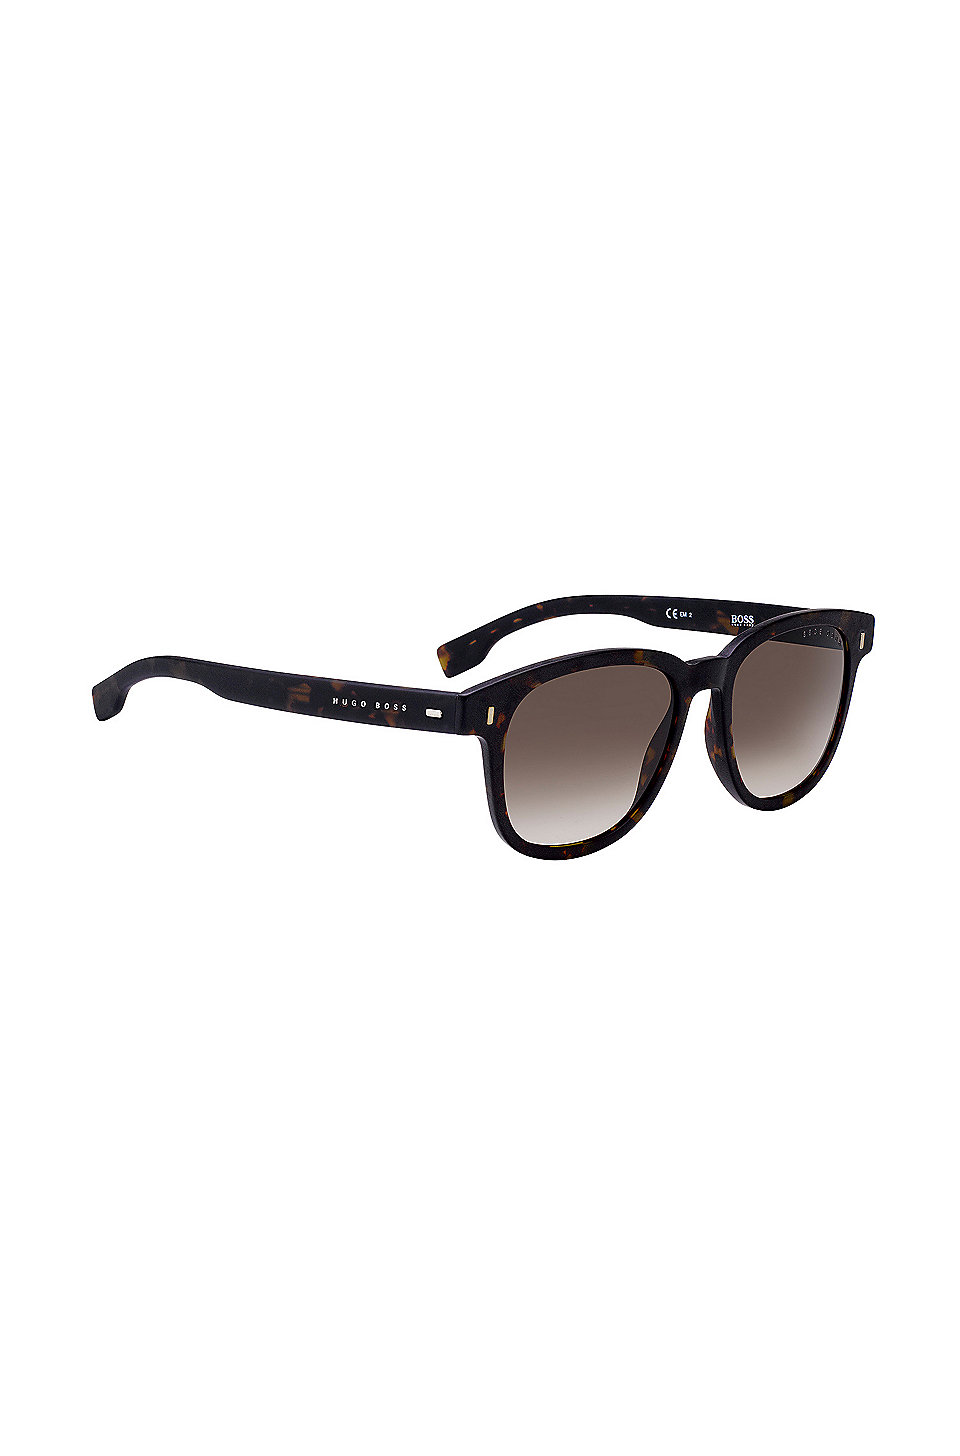 Acetate sunglasses with grey patterned frames BOSS lnoMx6